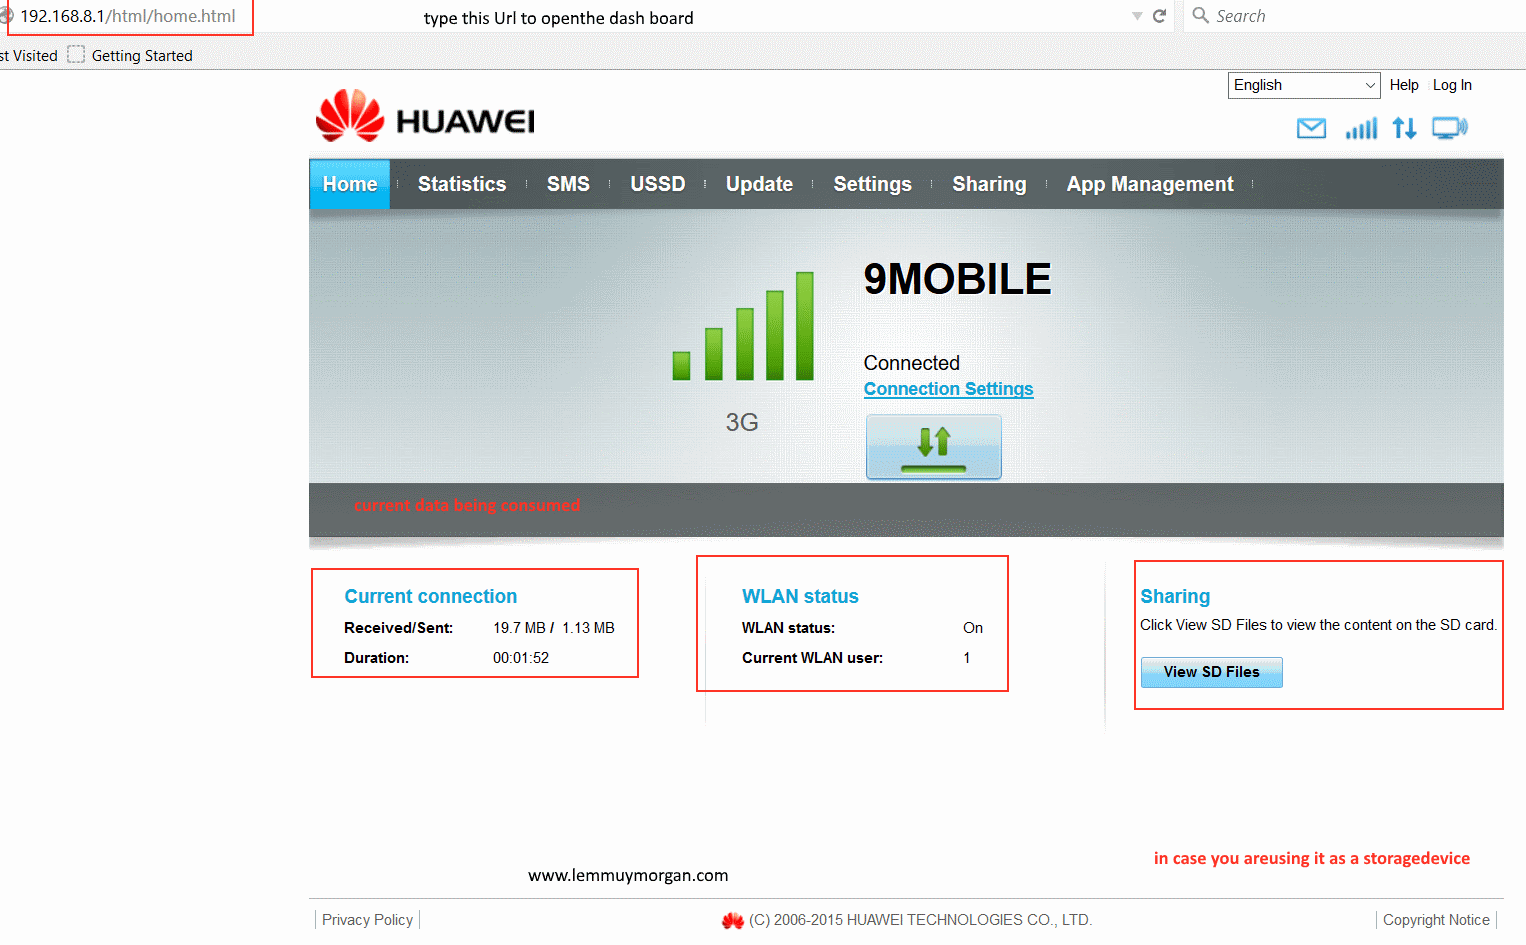 Huawei USB modem plus MiFi combo the getting started guide